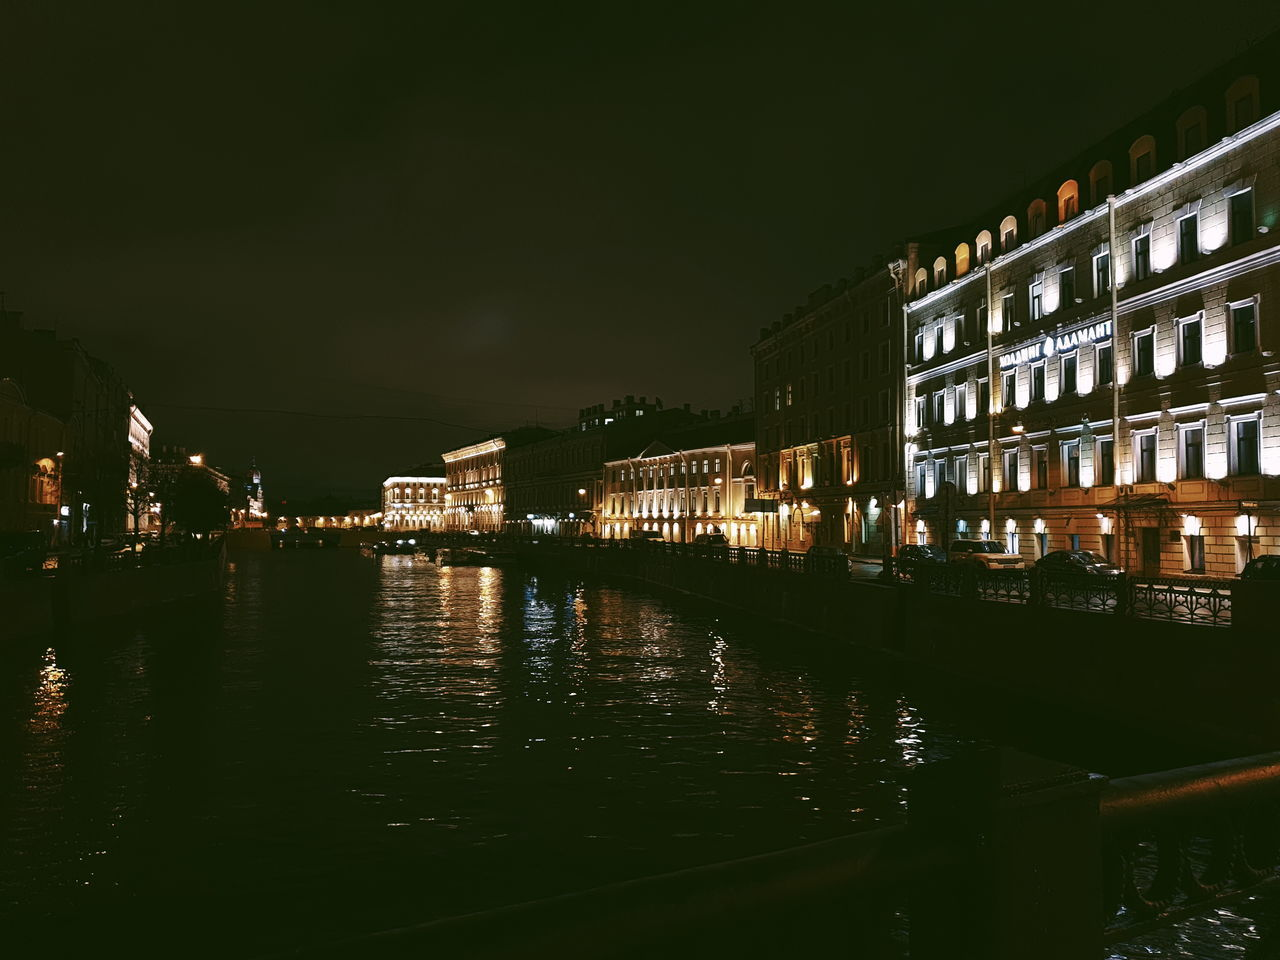 RIVER BY ILLUMINATED BUILDINGS IN CITY AT NIGHT